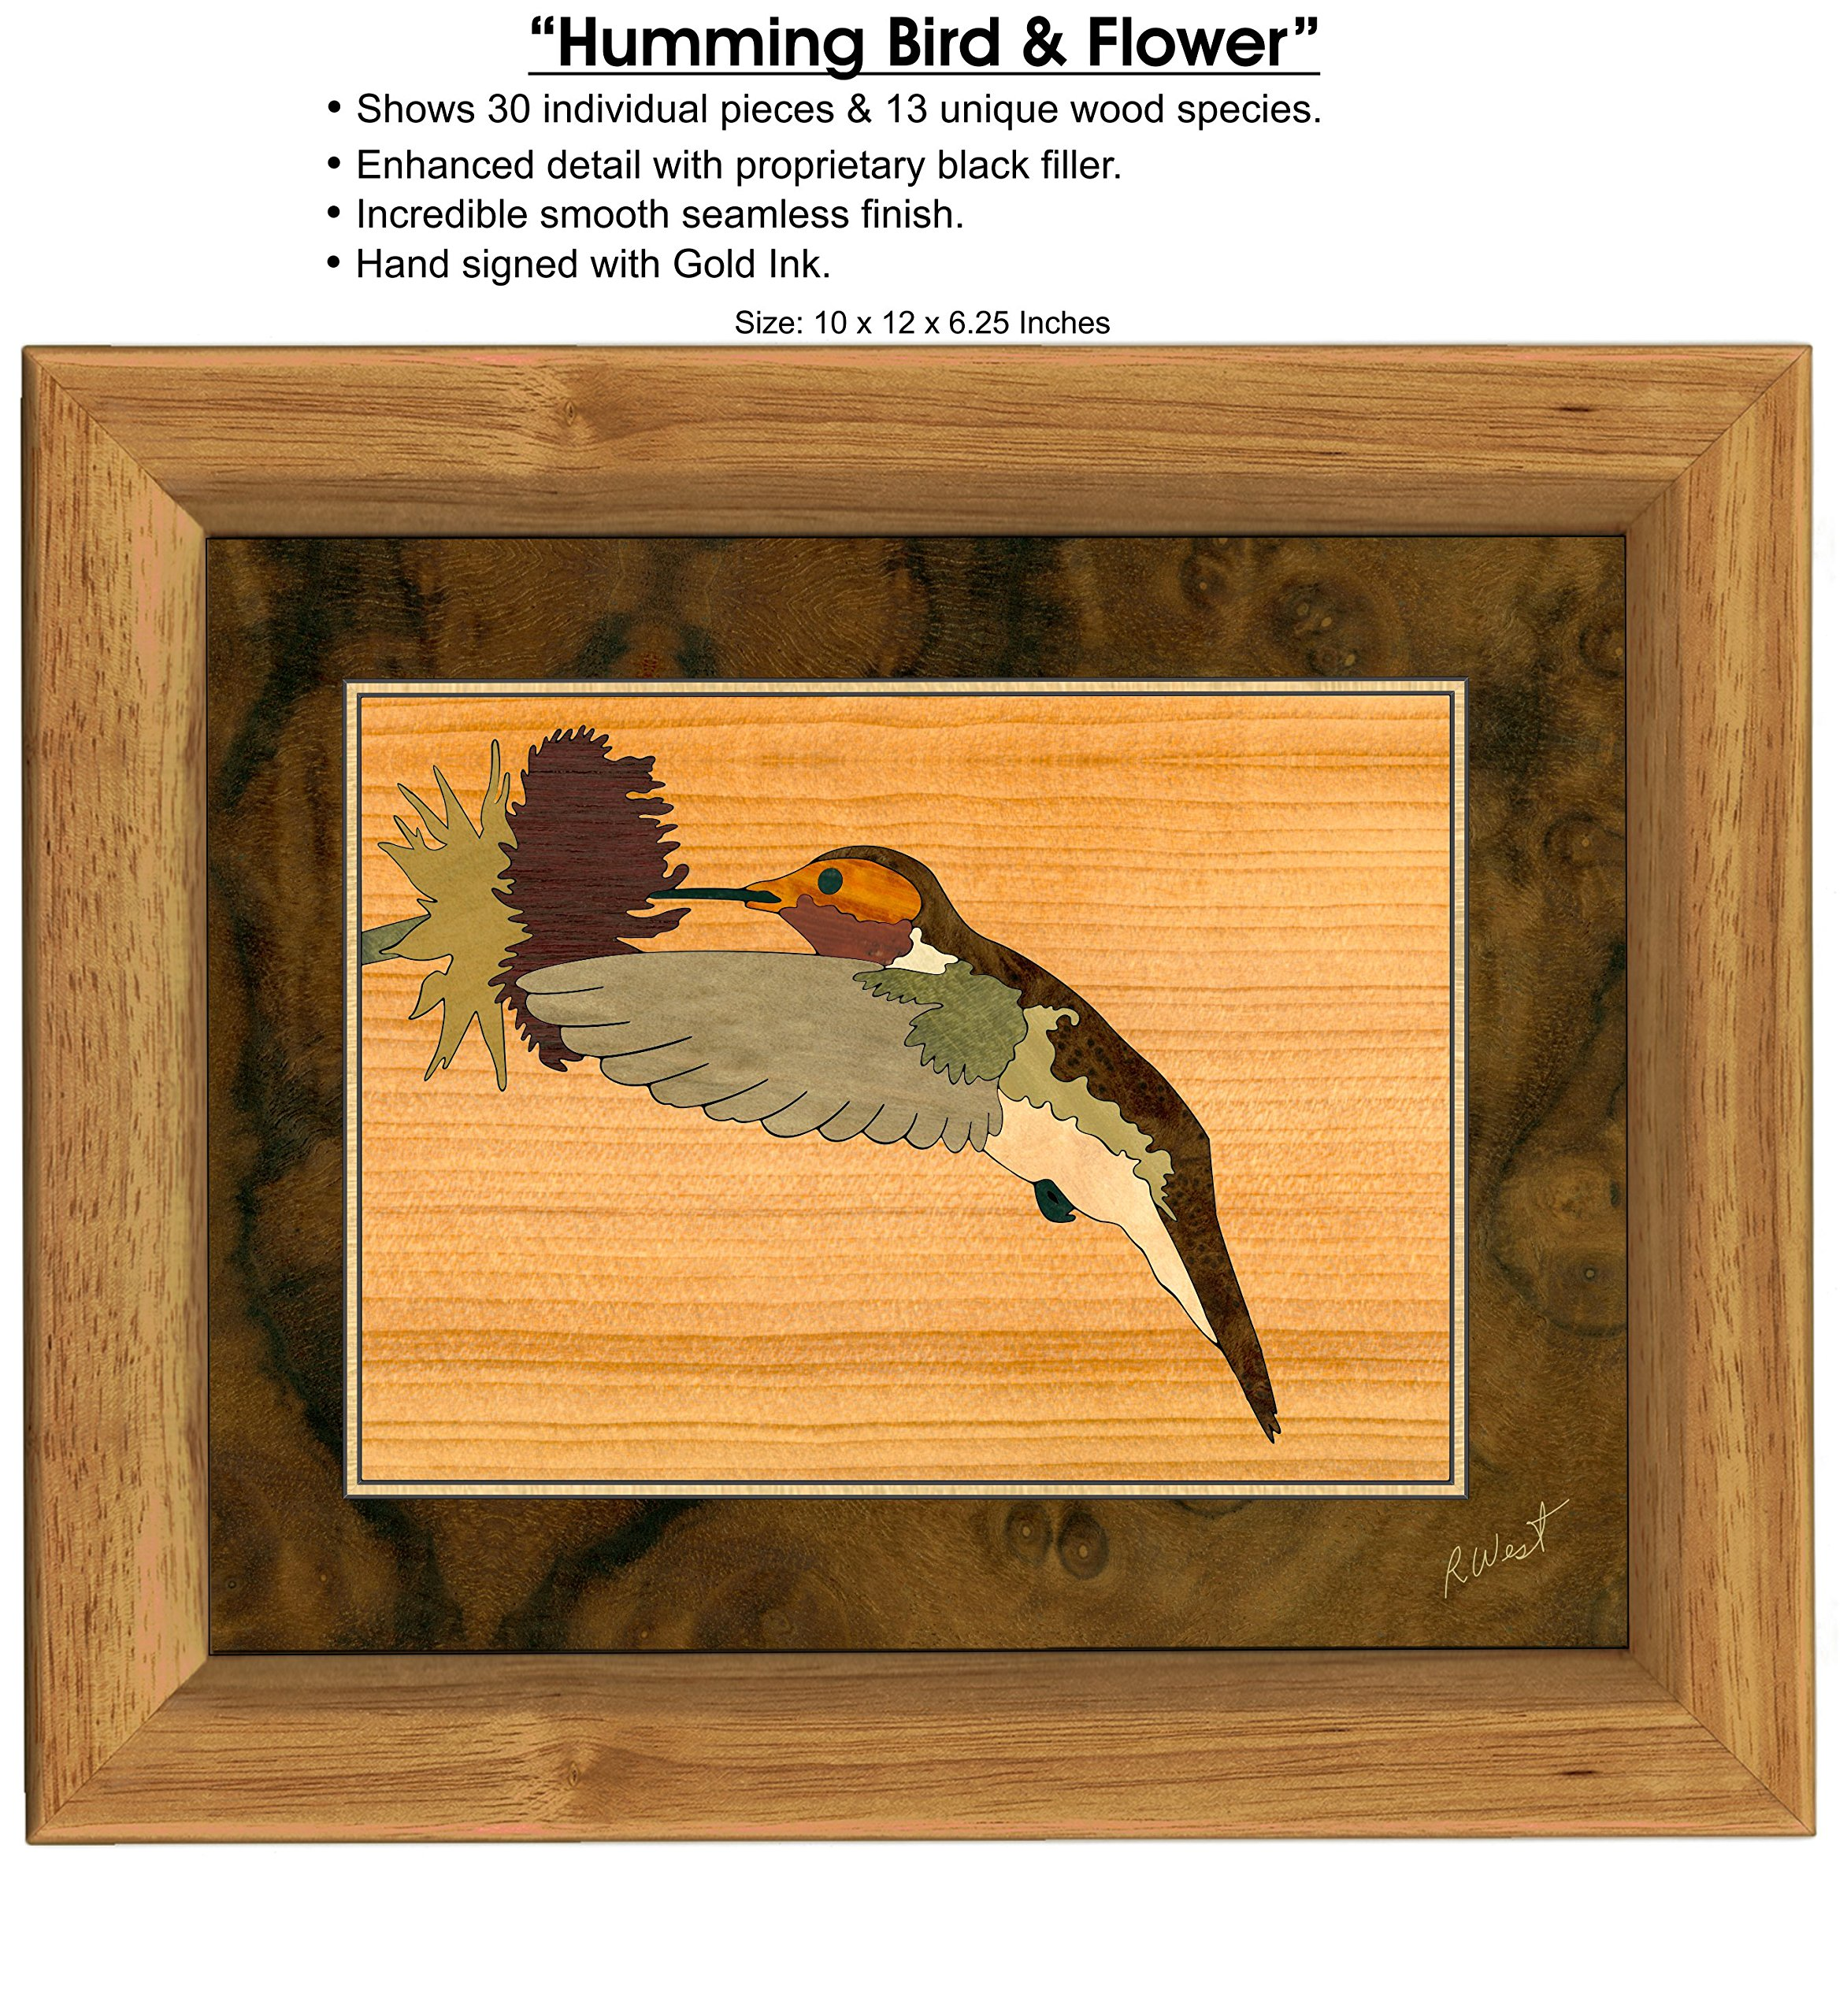 MarqART Hummingbird Wood Art Jewelry Box & Gift - Handmade USA - Unmatched Quality - Unique, No Two are The Same - Original Work of Wood Art (#7017 Hummingbird 3 Drawer) by MarqART (Image #2)